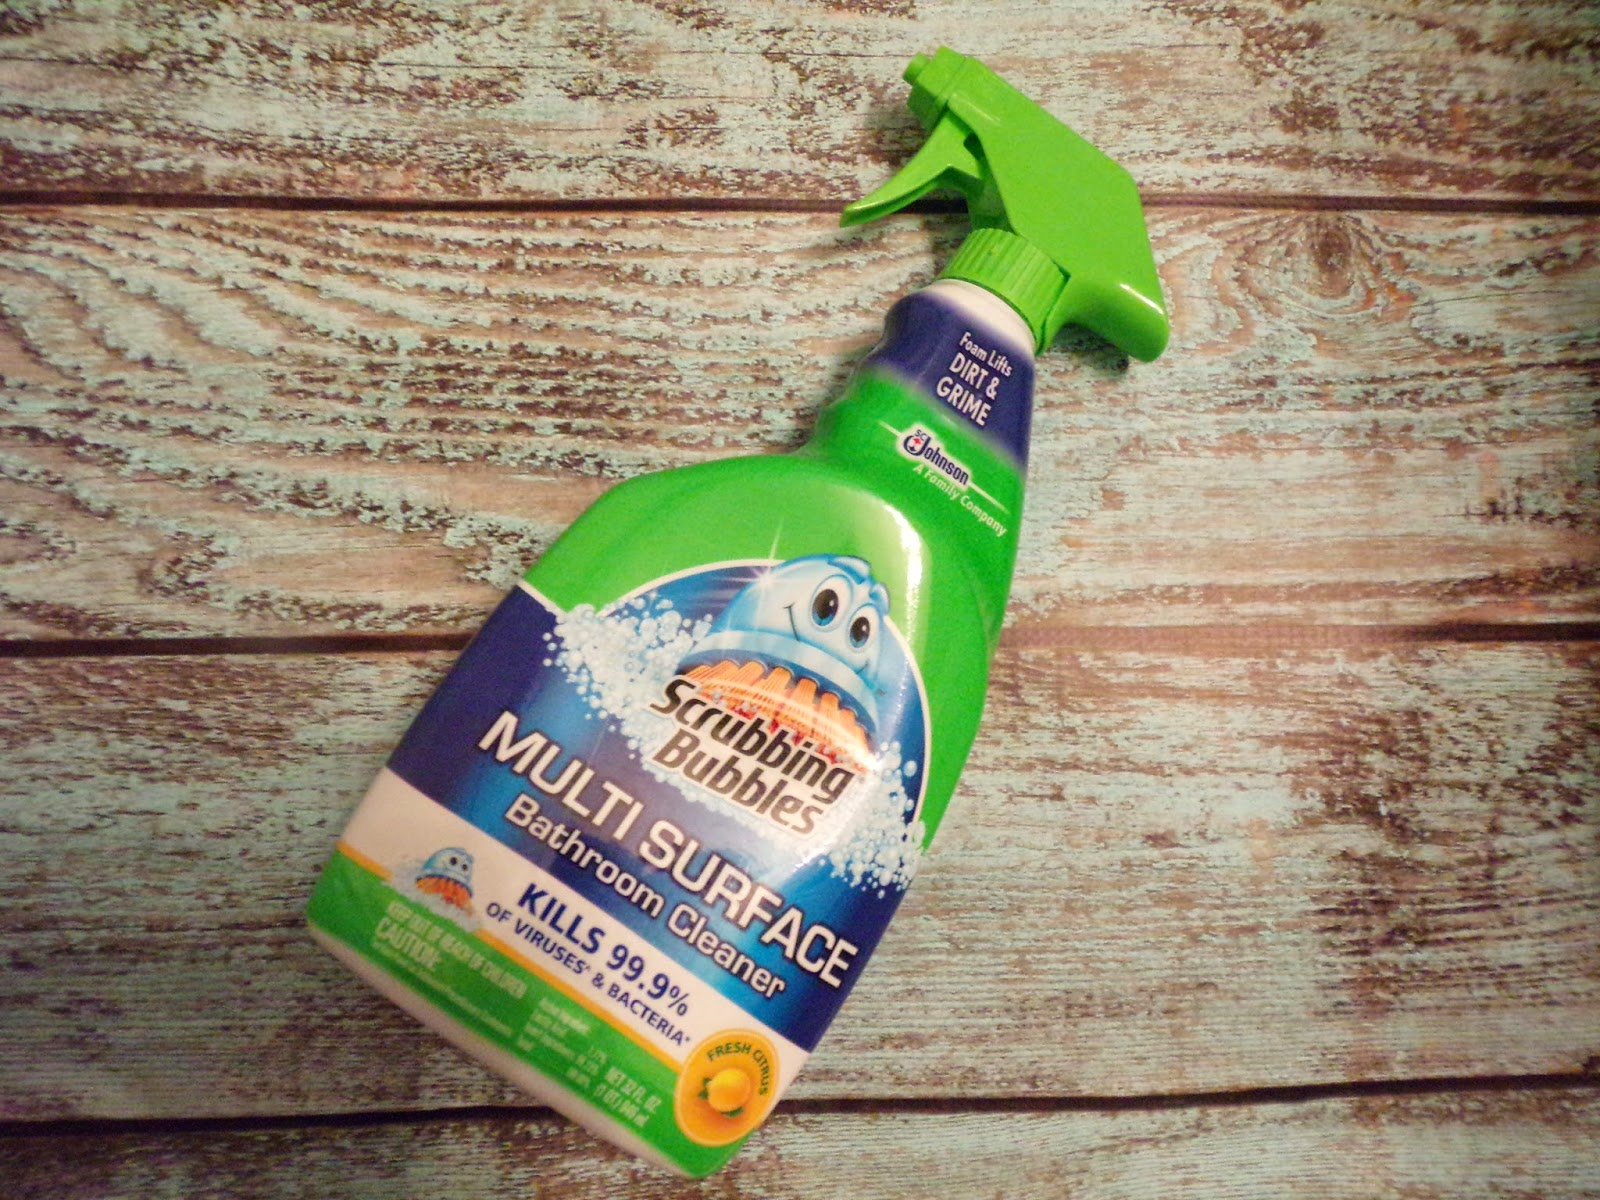 Scrubbing Bubbles® Makes Cleaning Bathrooms Super Easy #IC #BehindClosedDoors #sponsored